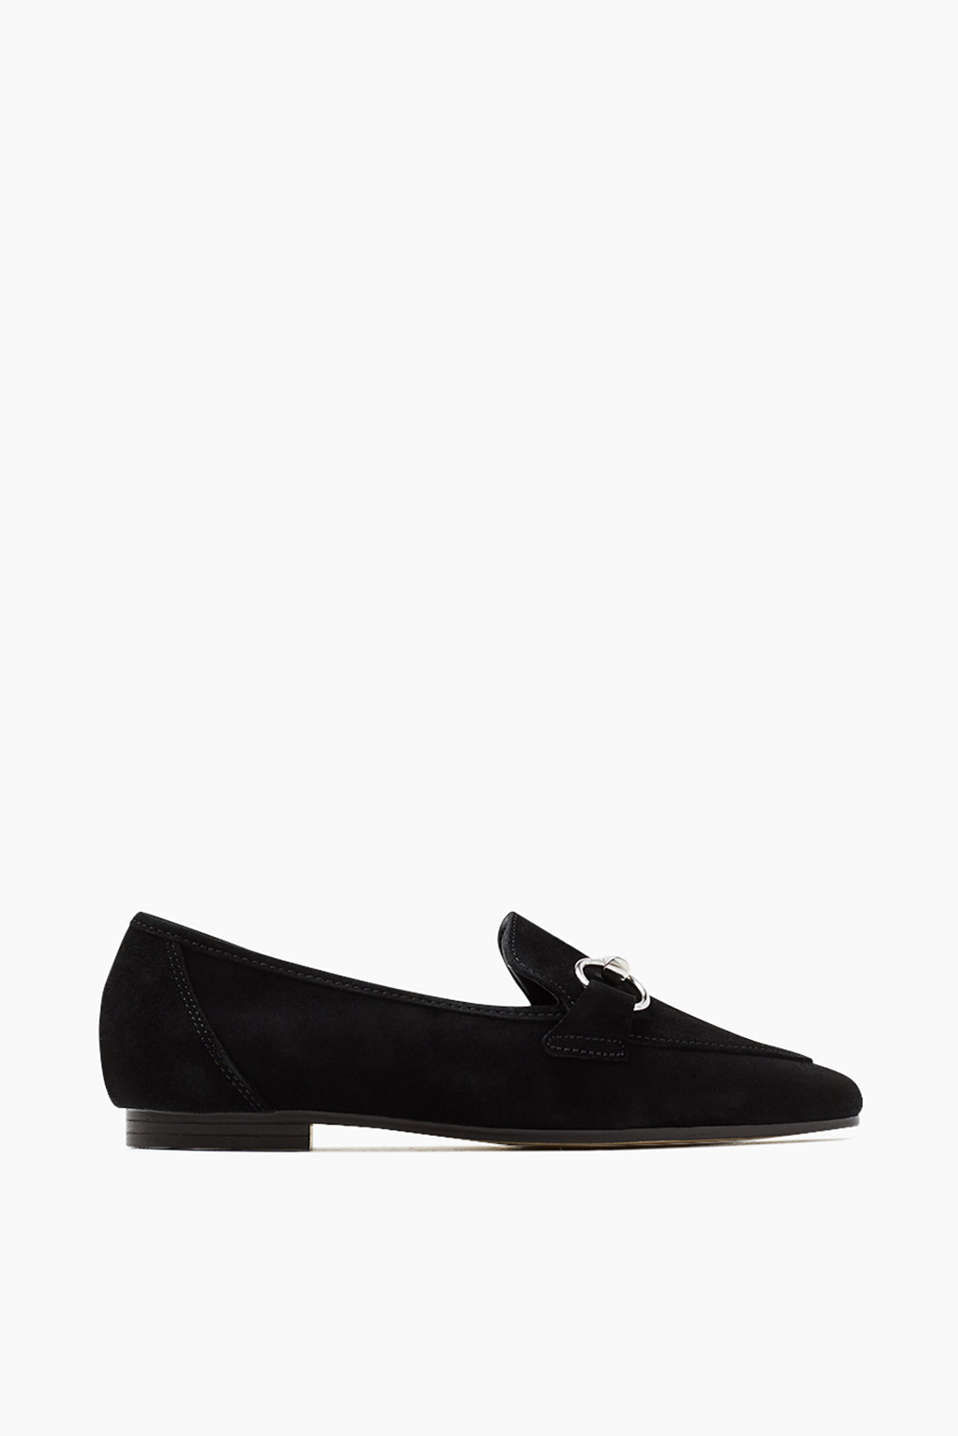 Soft suede loafers with an eye-catching, silver-coloured buckle